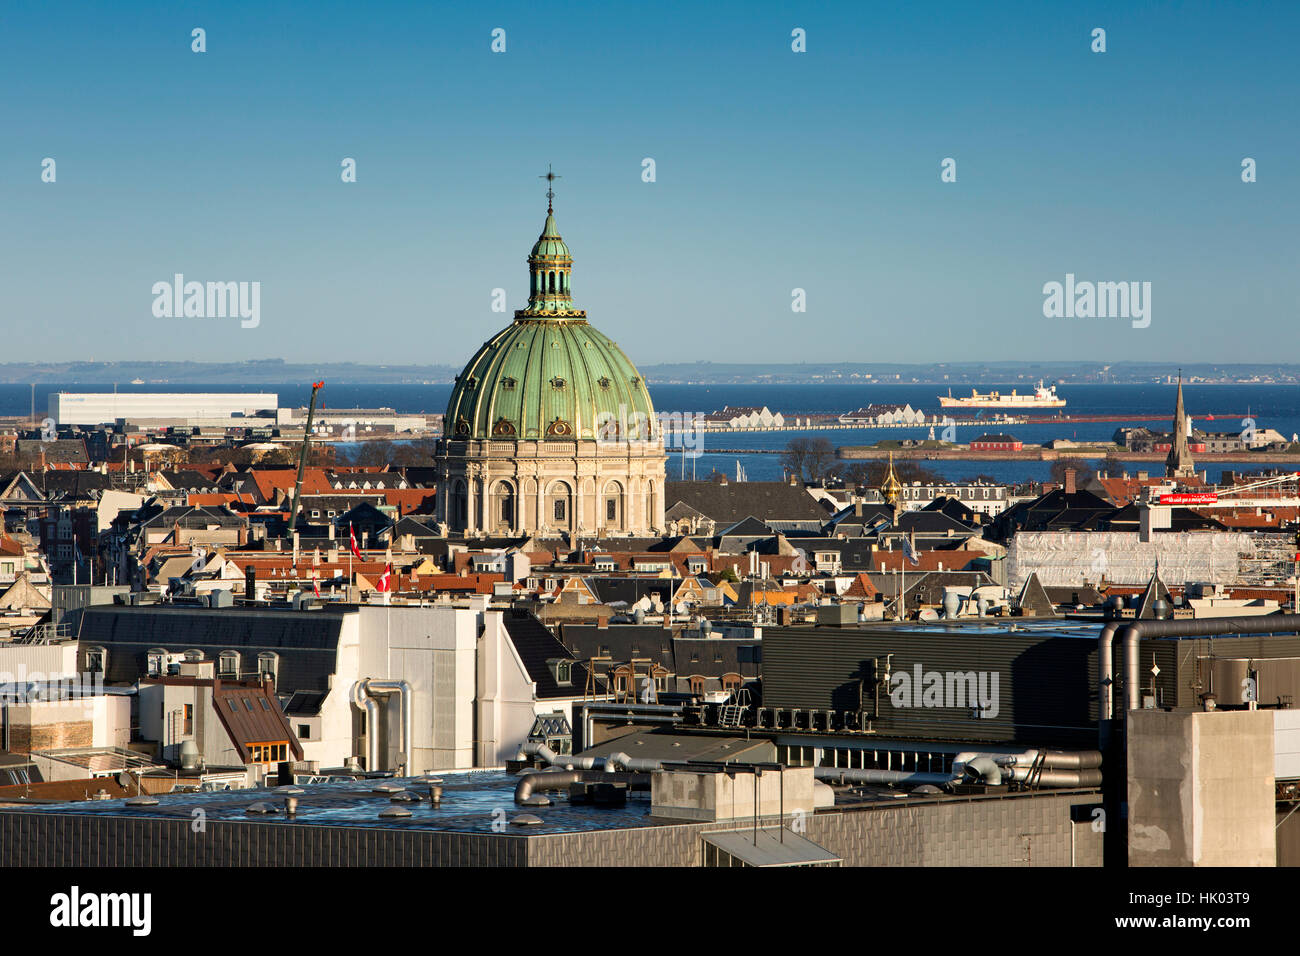 Denmark, Copenhagen, Green dome of Frederiks Kirke, Marble Church, elevated view from Christianborg Palace tower - Stock Image